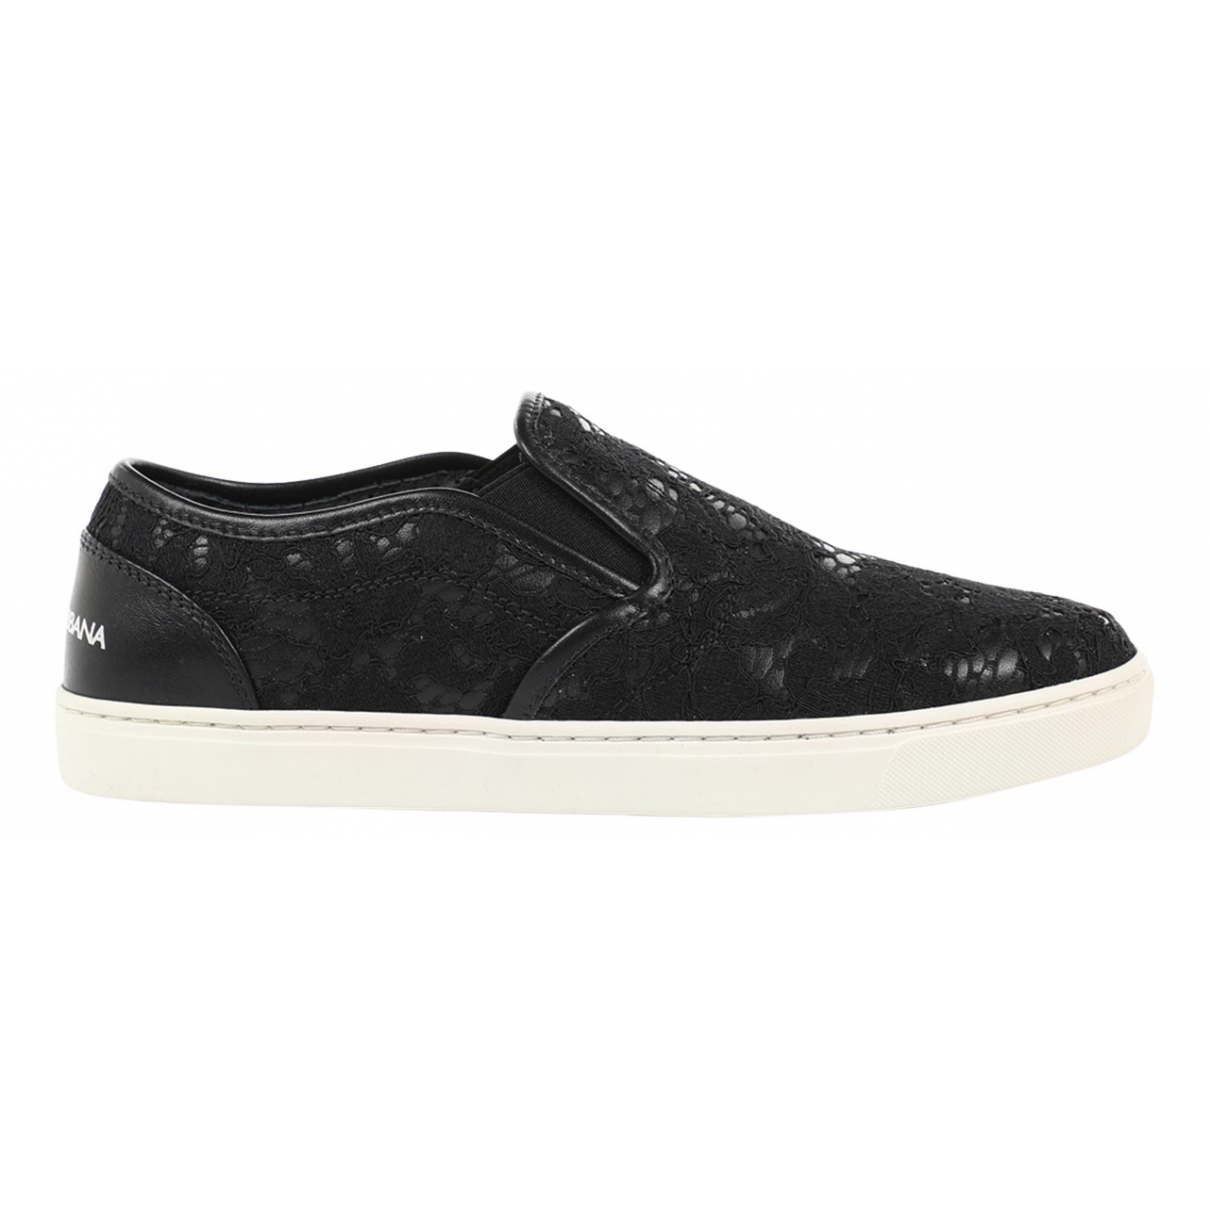 Dolce & Gabbana \N Black Leather Trainers for Women 35 EU